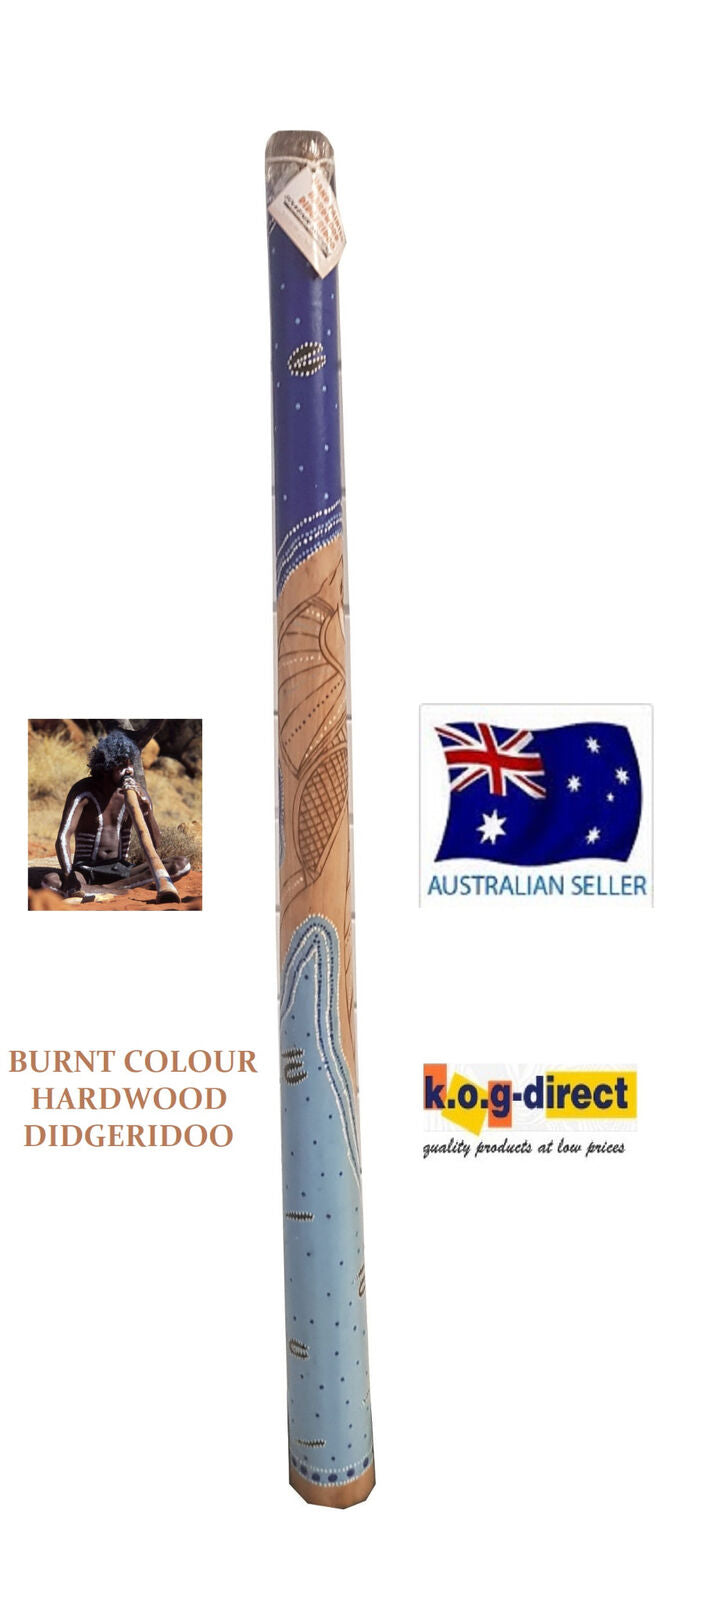 DIDGERIDOO BURNT COLOUR HARDWOOD 130CM ABORIGINAL BEAUTIFULLY HAND PAINTED NEW BL